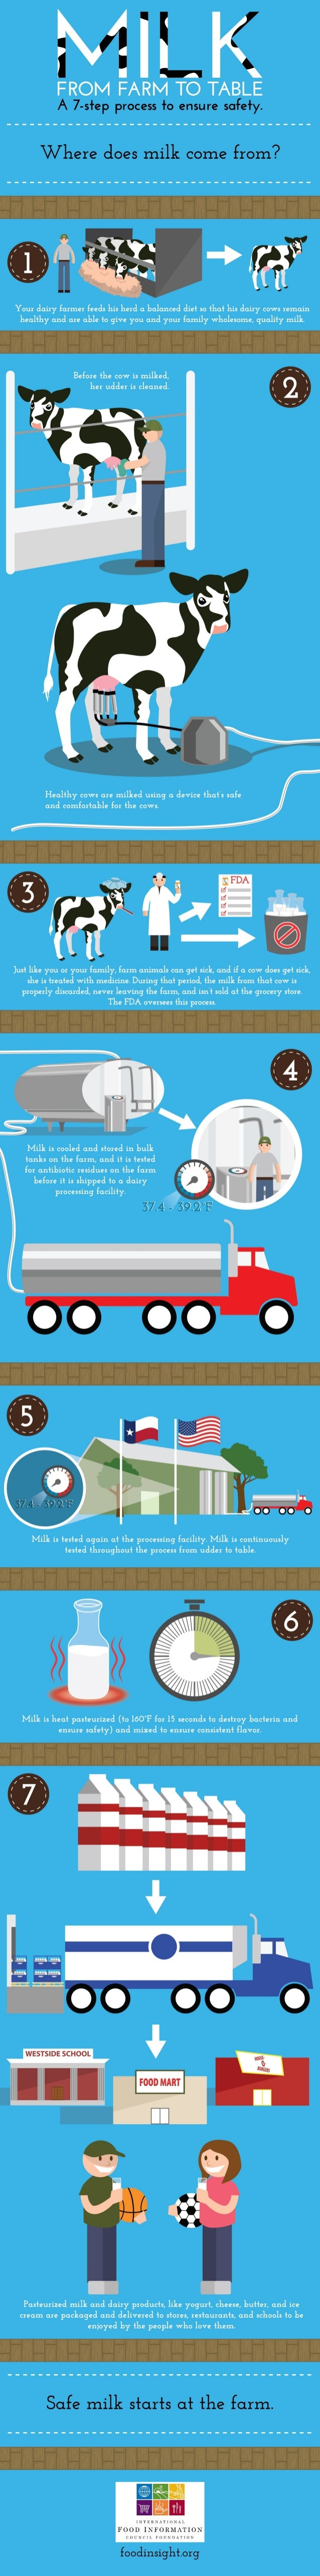 Final  milk production infographic  2014